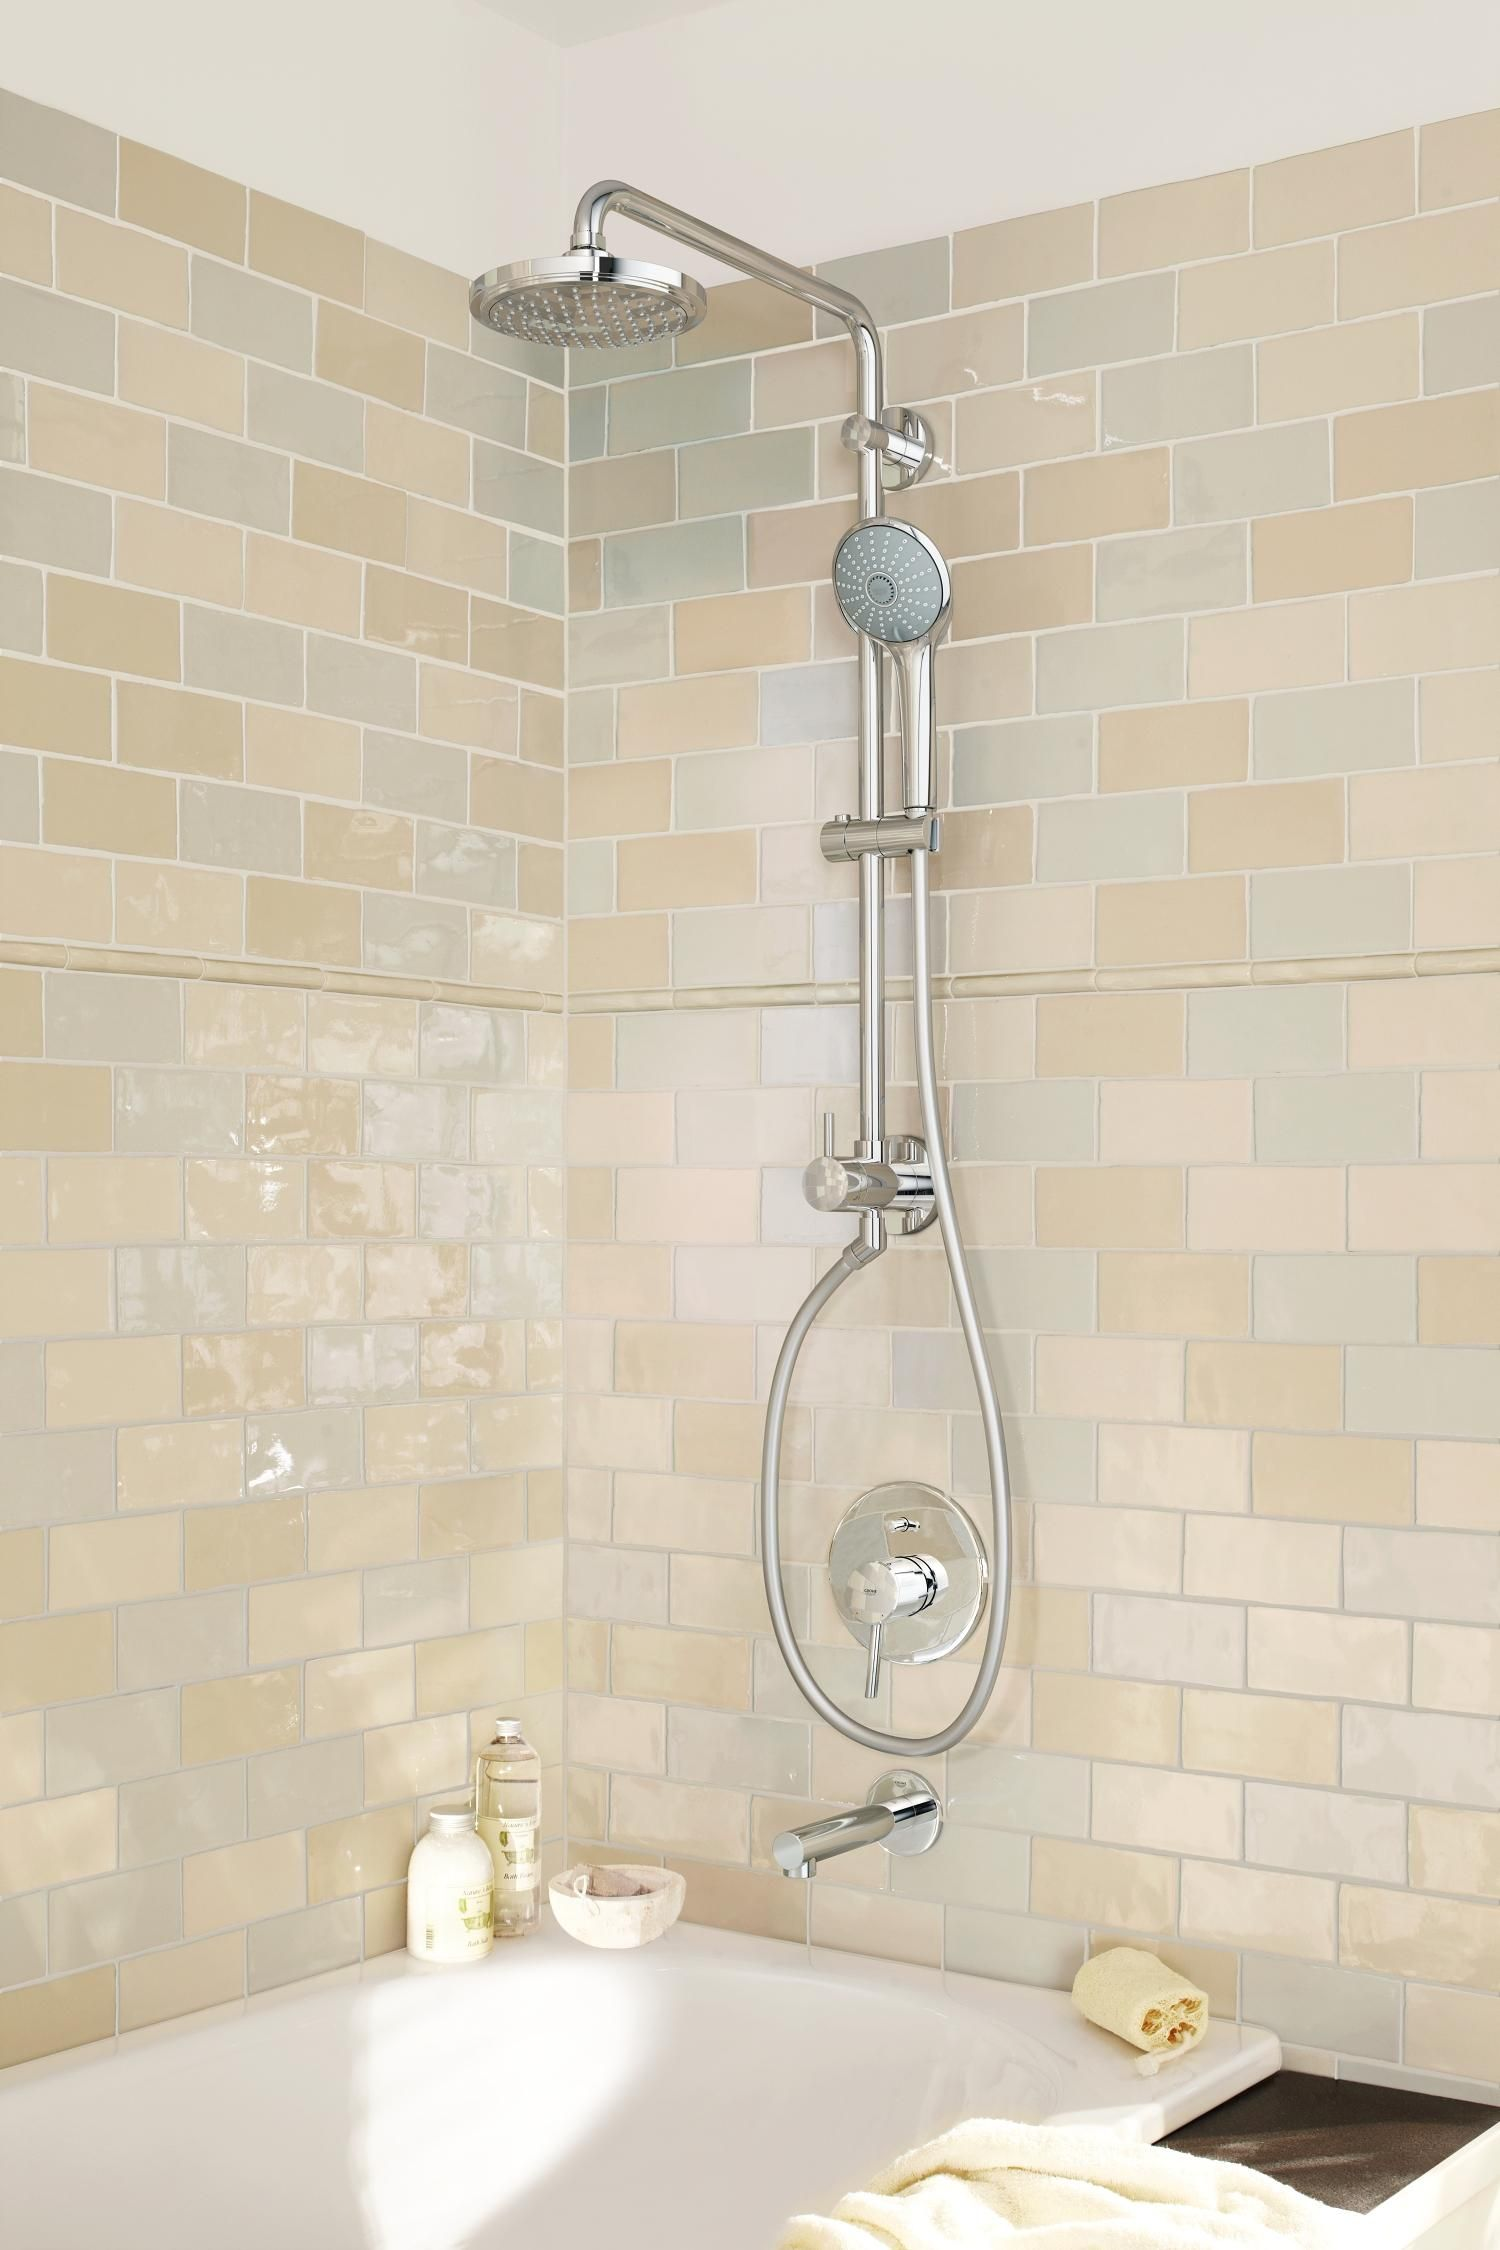 Ideal For Retrofit Or Renovation The Grohe Retro Fit Shower System Installs Easily And Quickly Simply Repl Shower Systems Bathroom Shower Systems Shower Tile